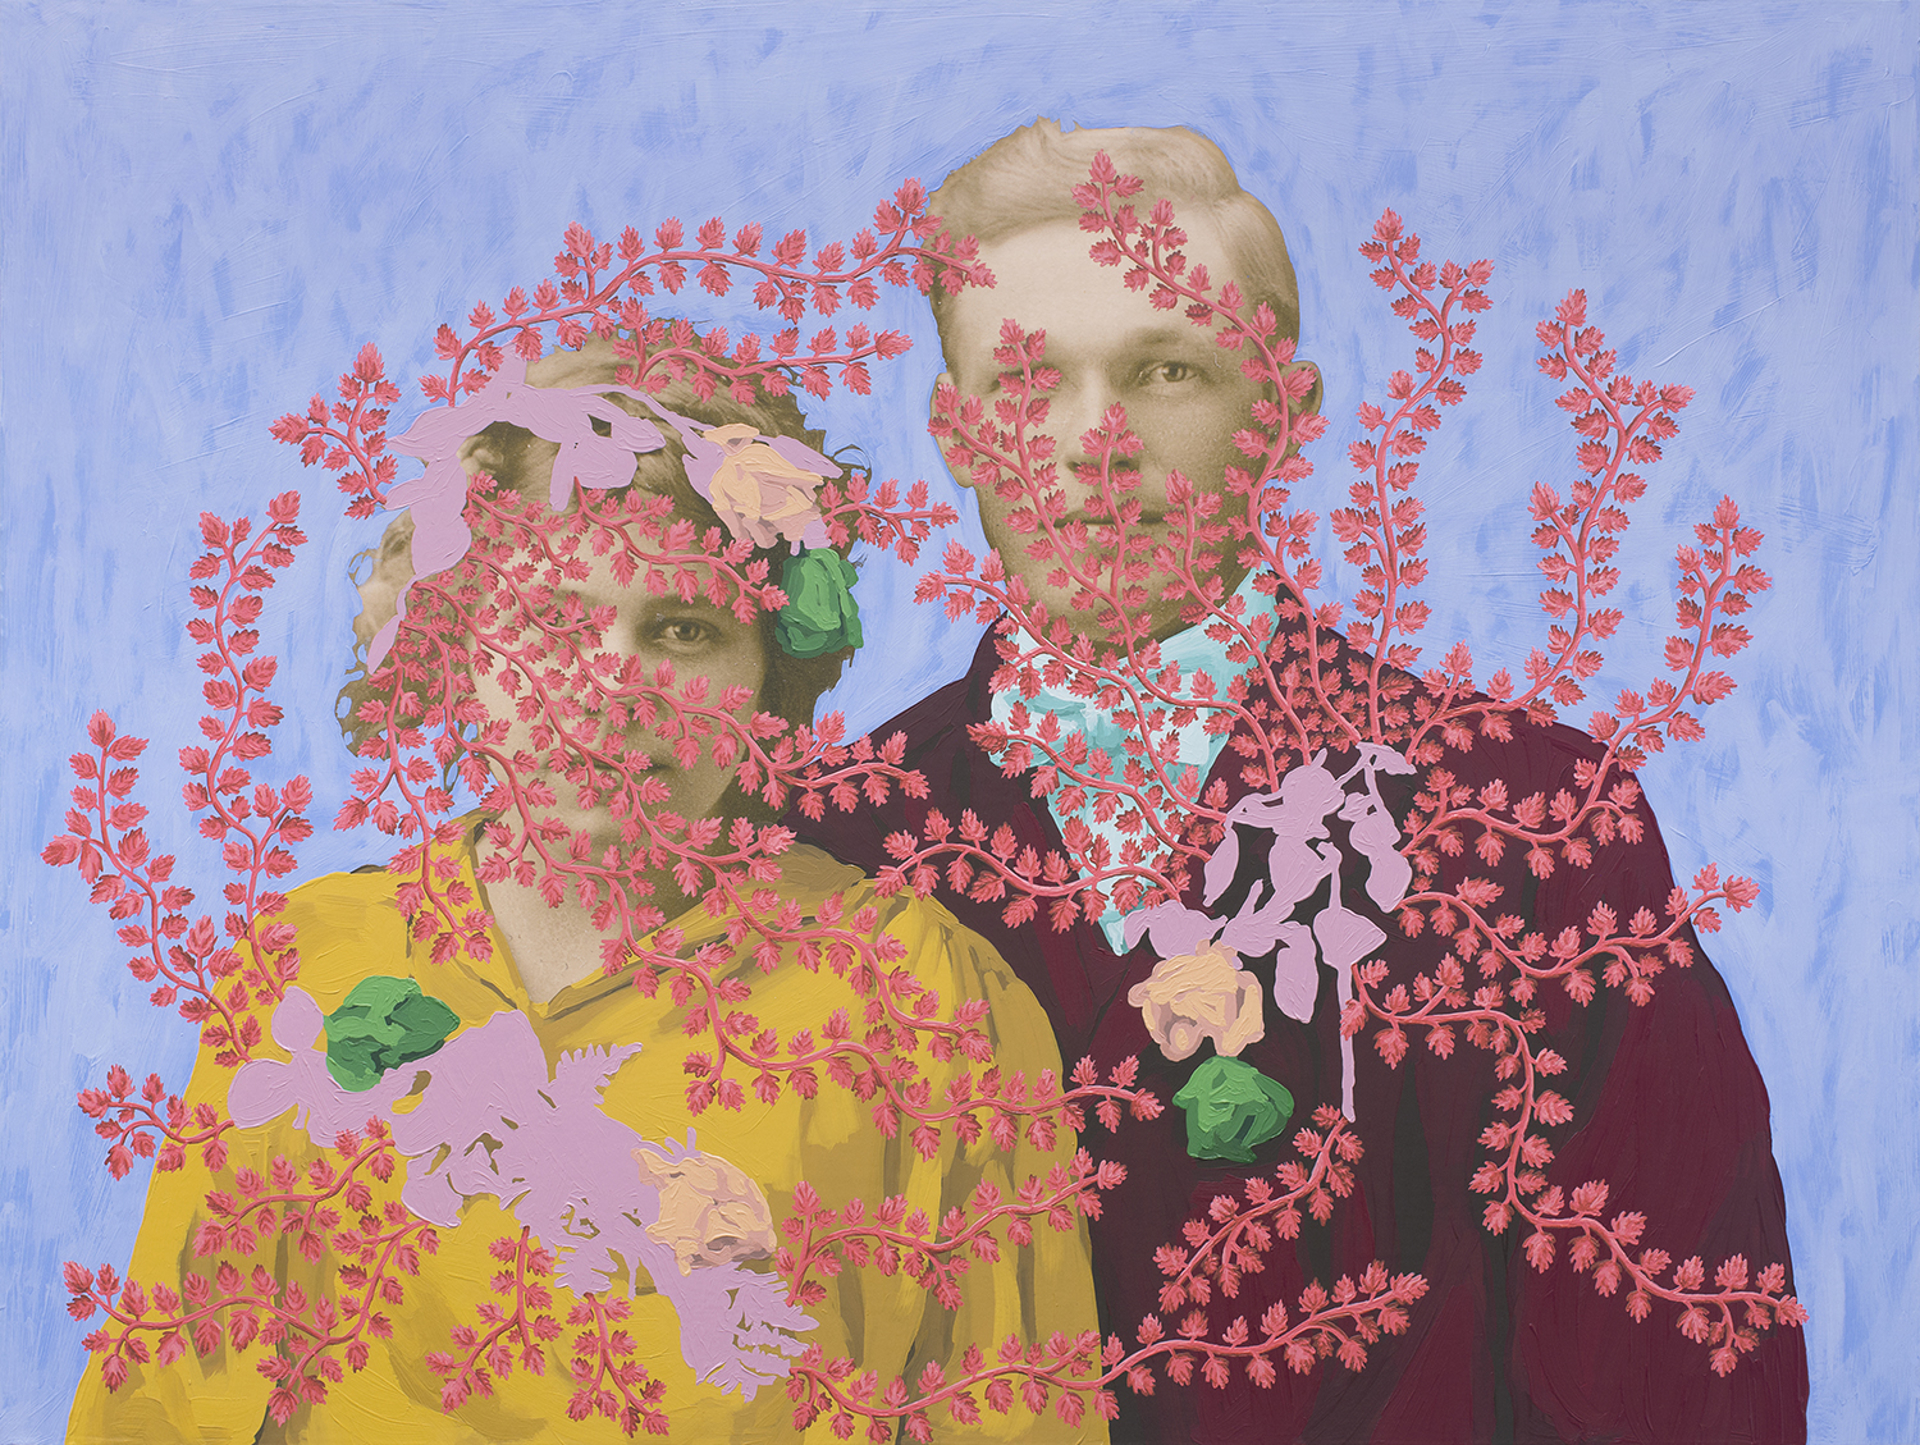 Untitled (Wedding Portrait with Flowers) by Daisy Patton